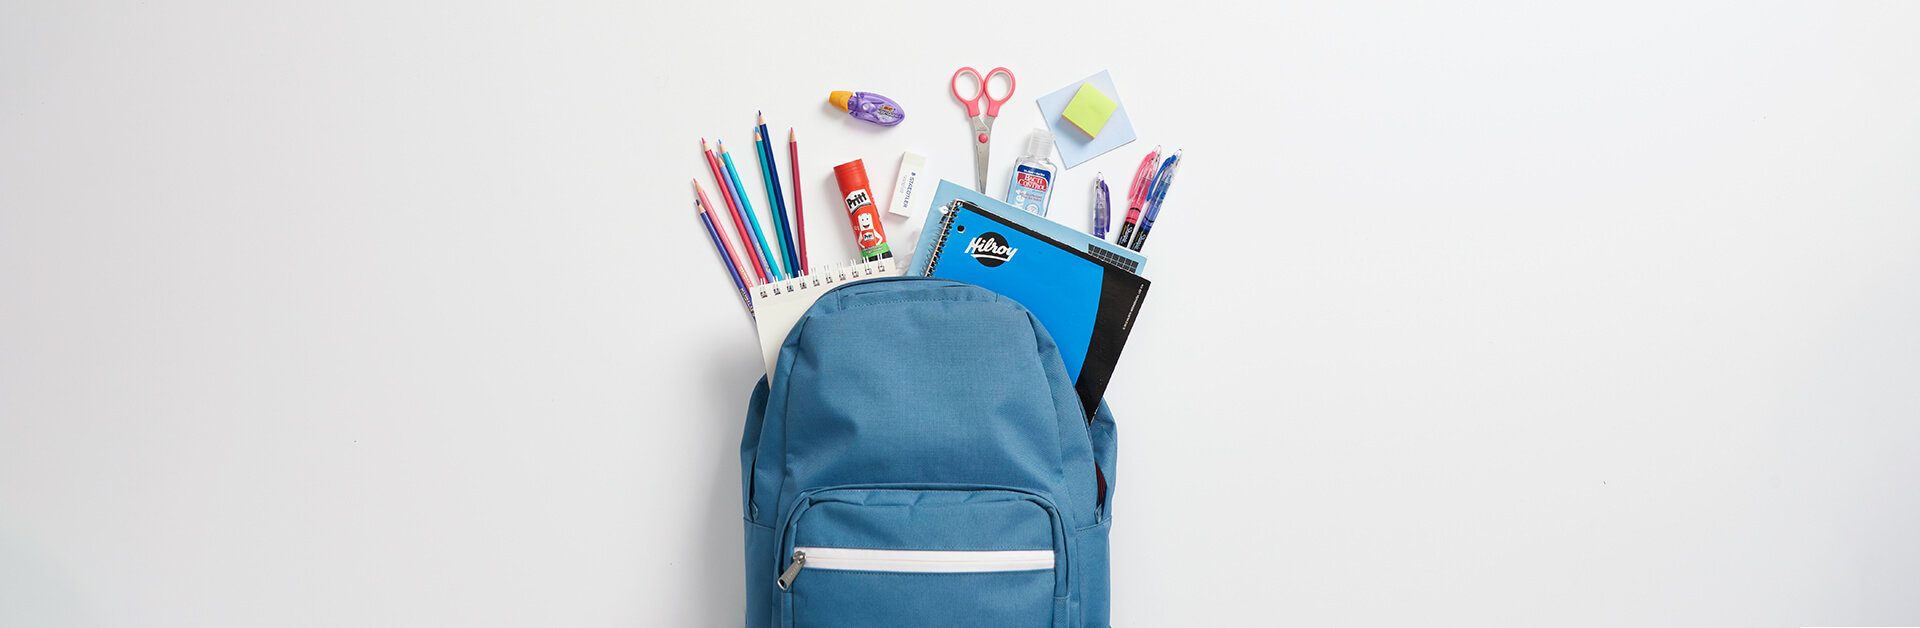 Blue back pack with and assortment of school supplies.